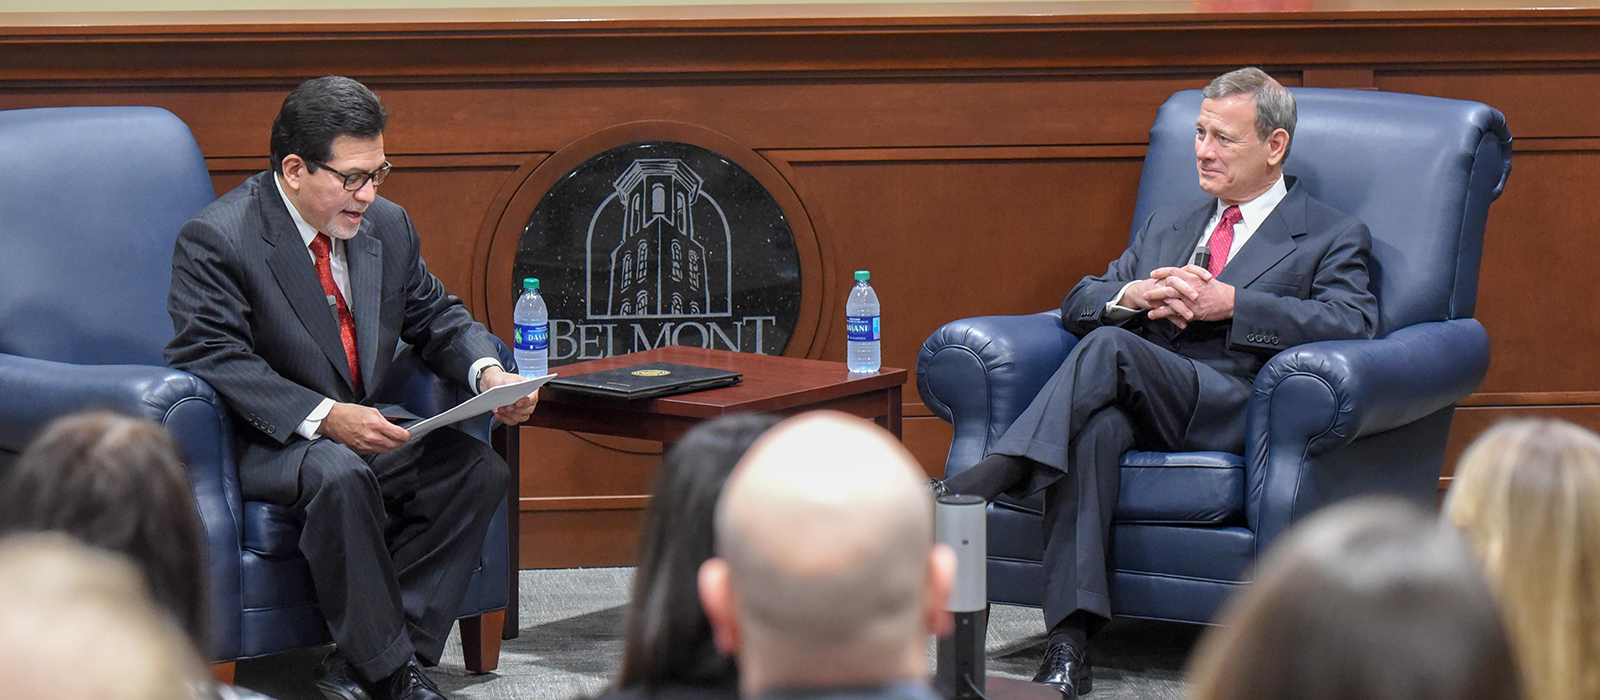 Honorable John G. Roberts, Jr., Chief Justice of the United States, Speaks at Belmont University